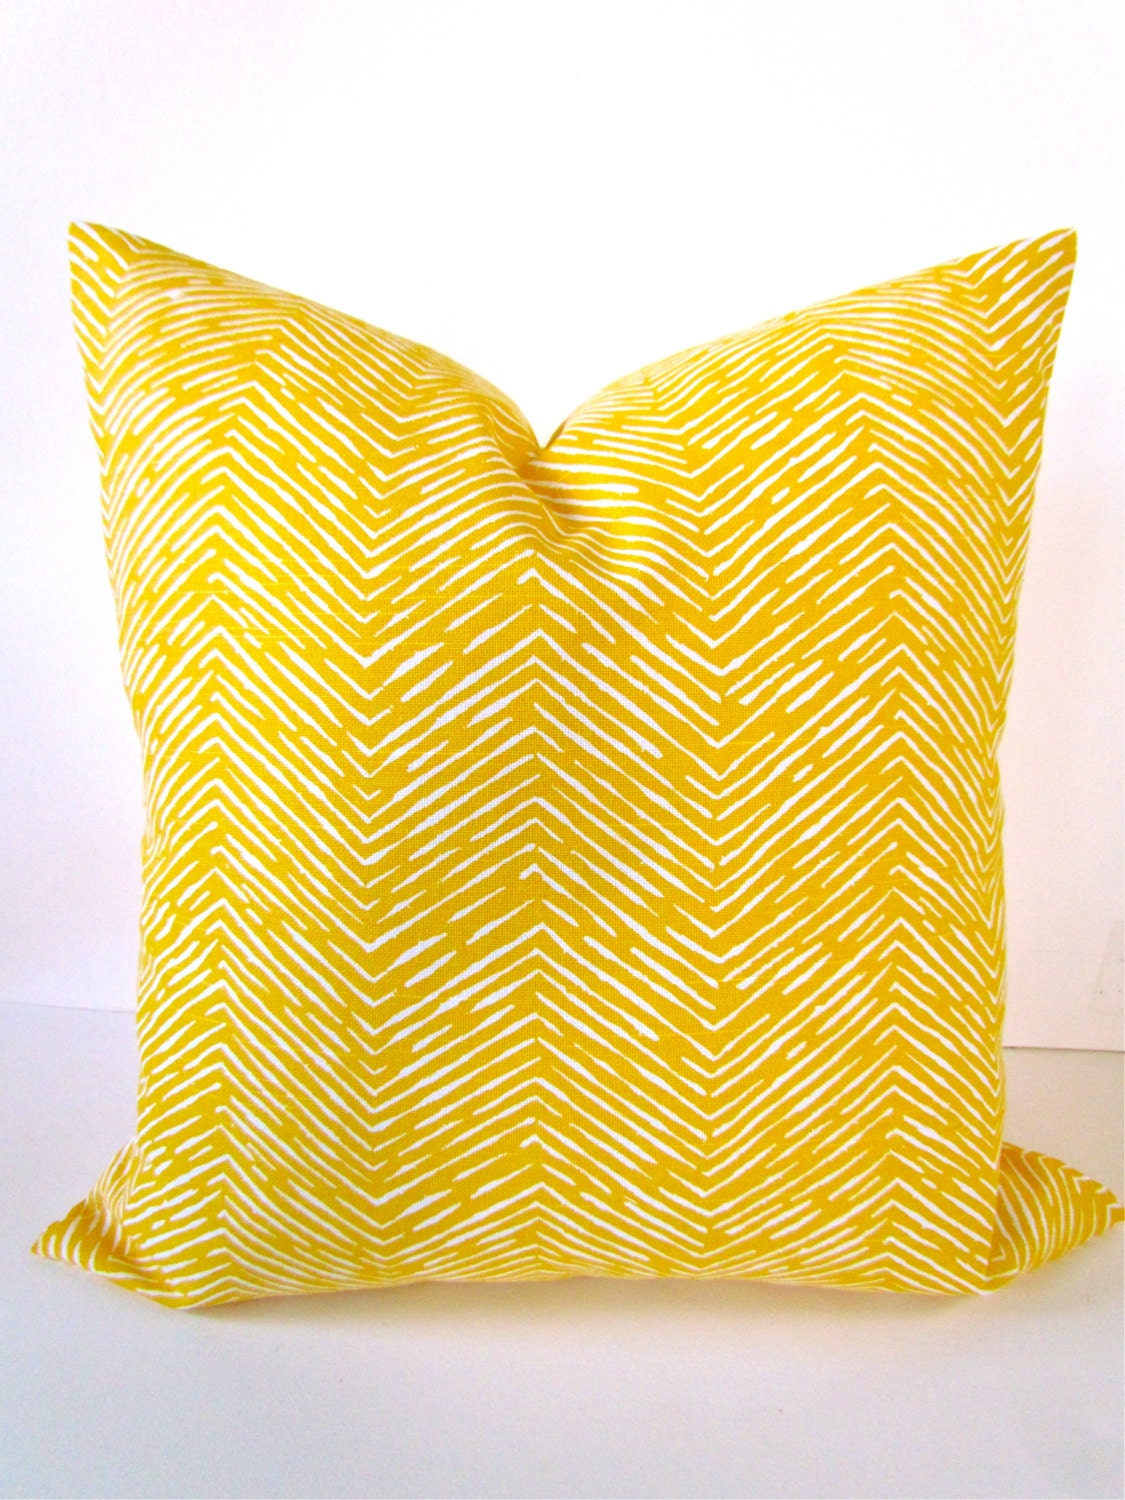 Decorative Pillow Yellow : YELLOW PILLOW Throw Pillow Cover YELLOW Decorative Throw